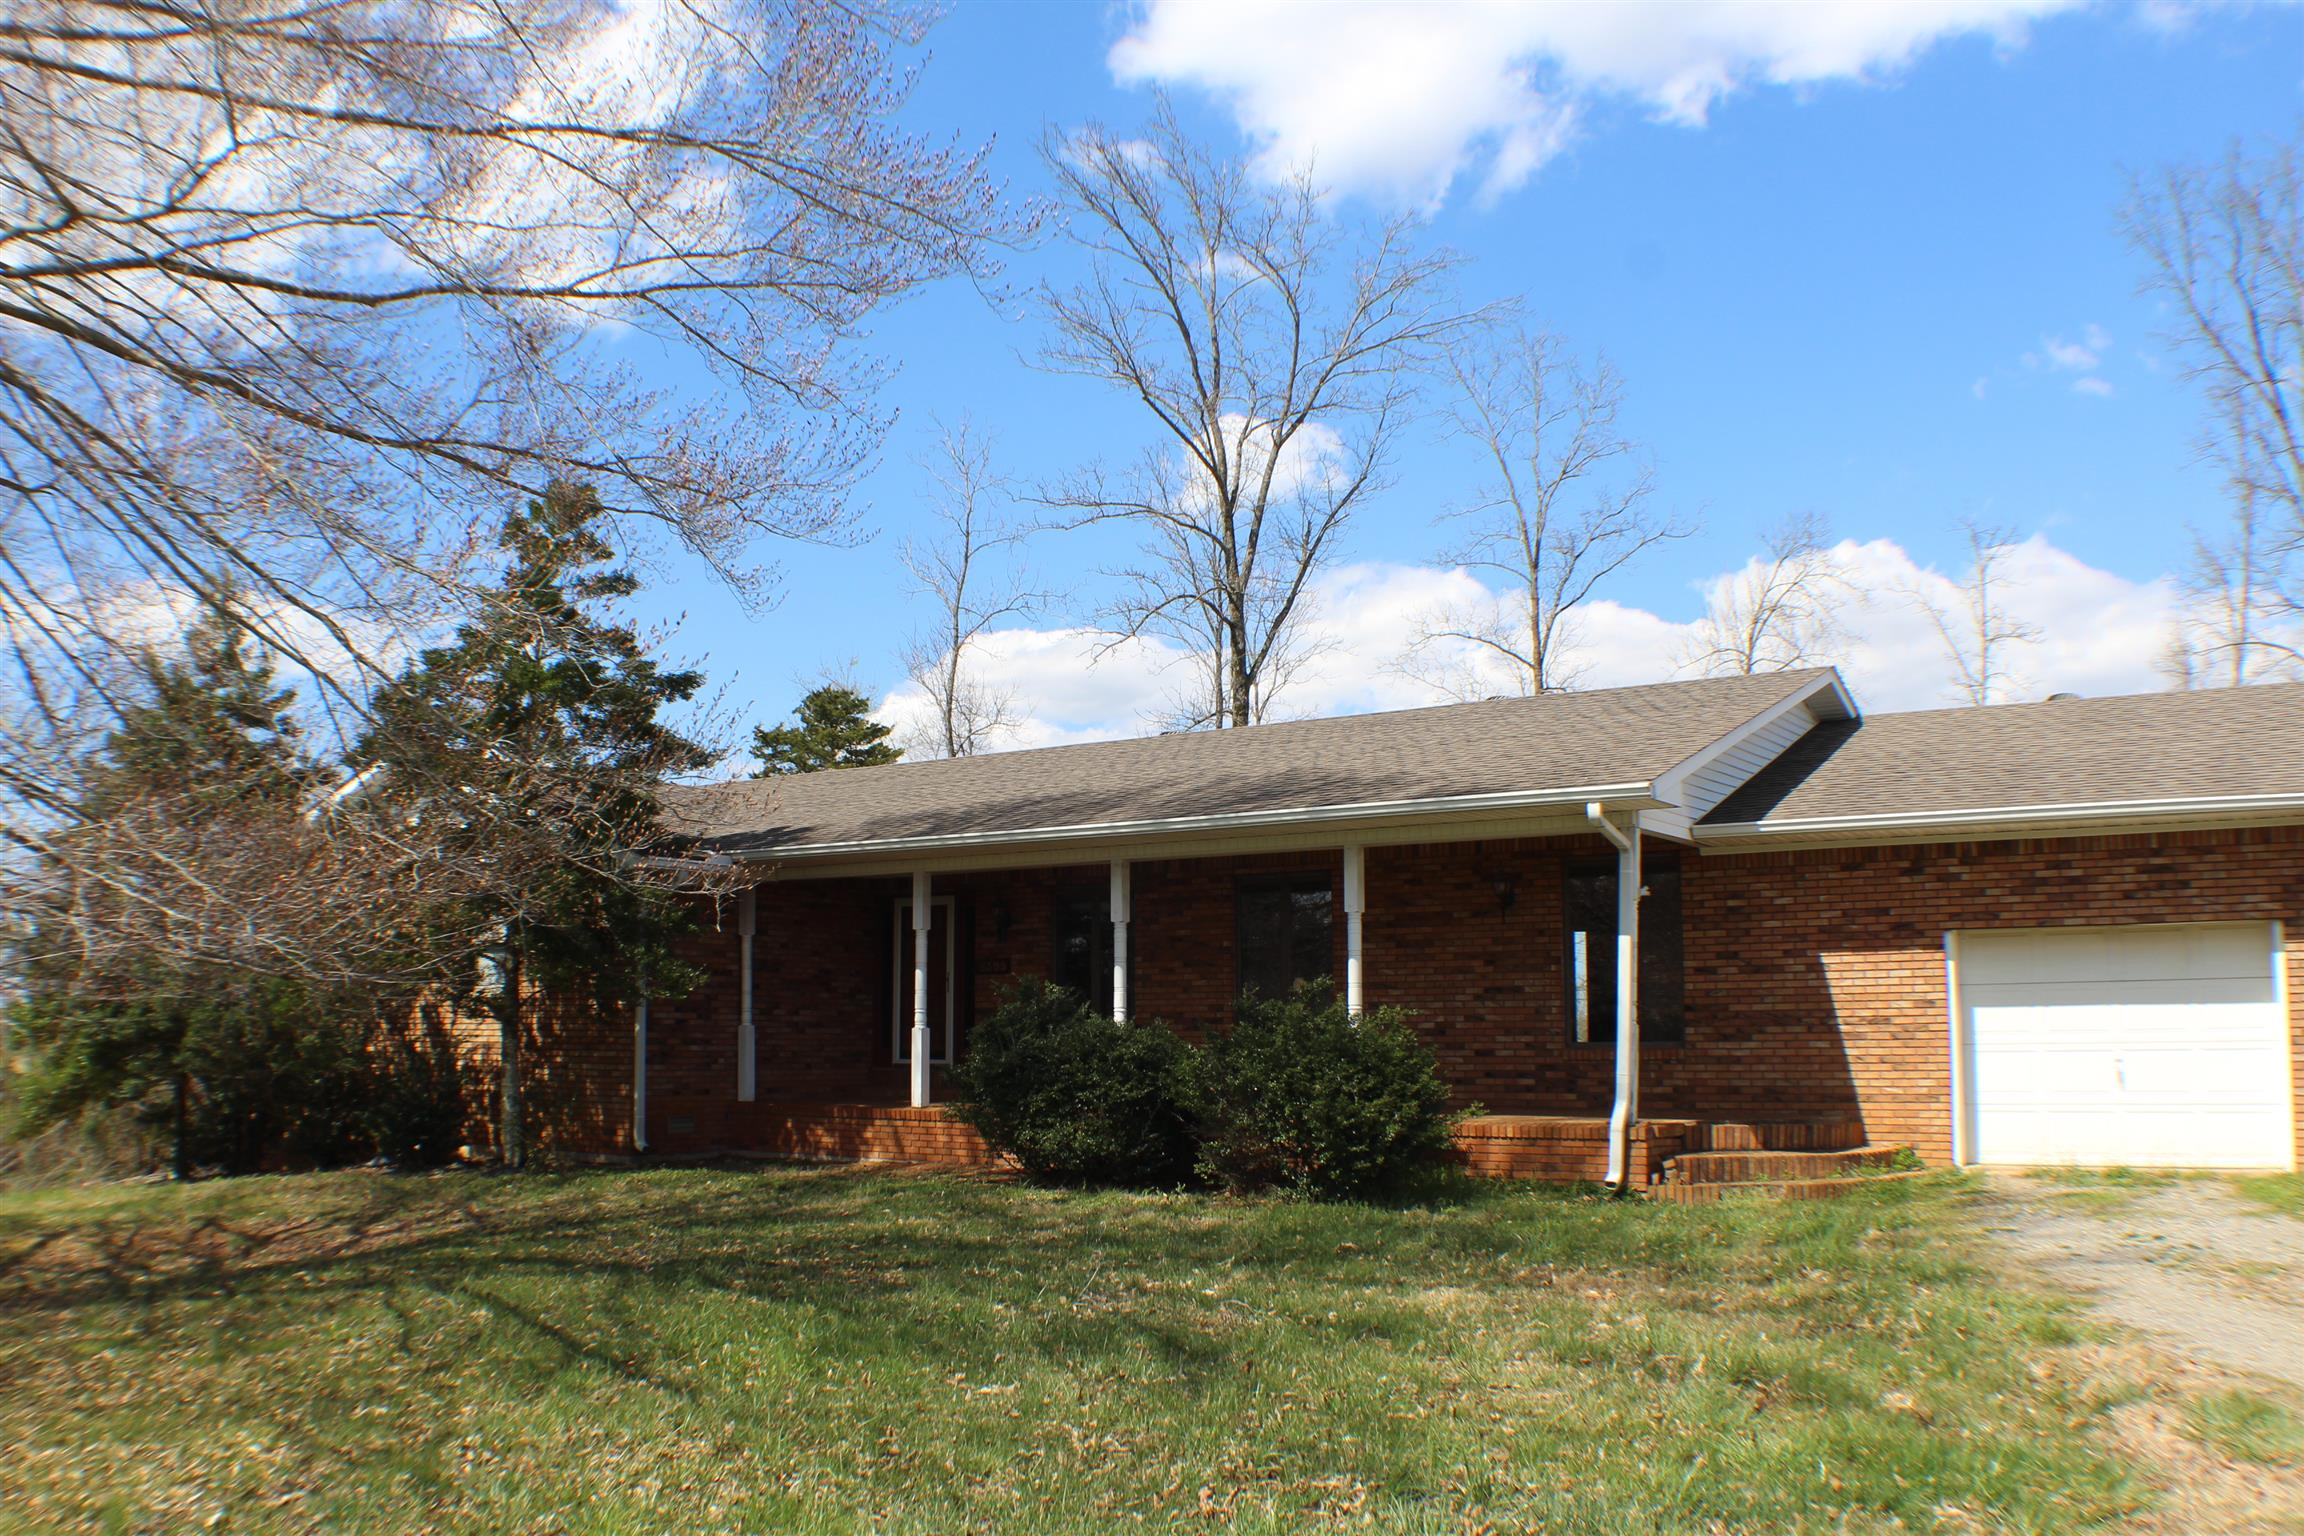 8399 Hilham Rd, Cookeville, TN 38506 - Cookeville, TN real estate listing